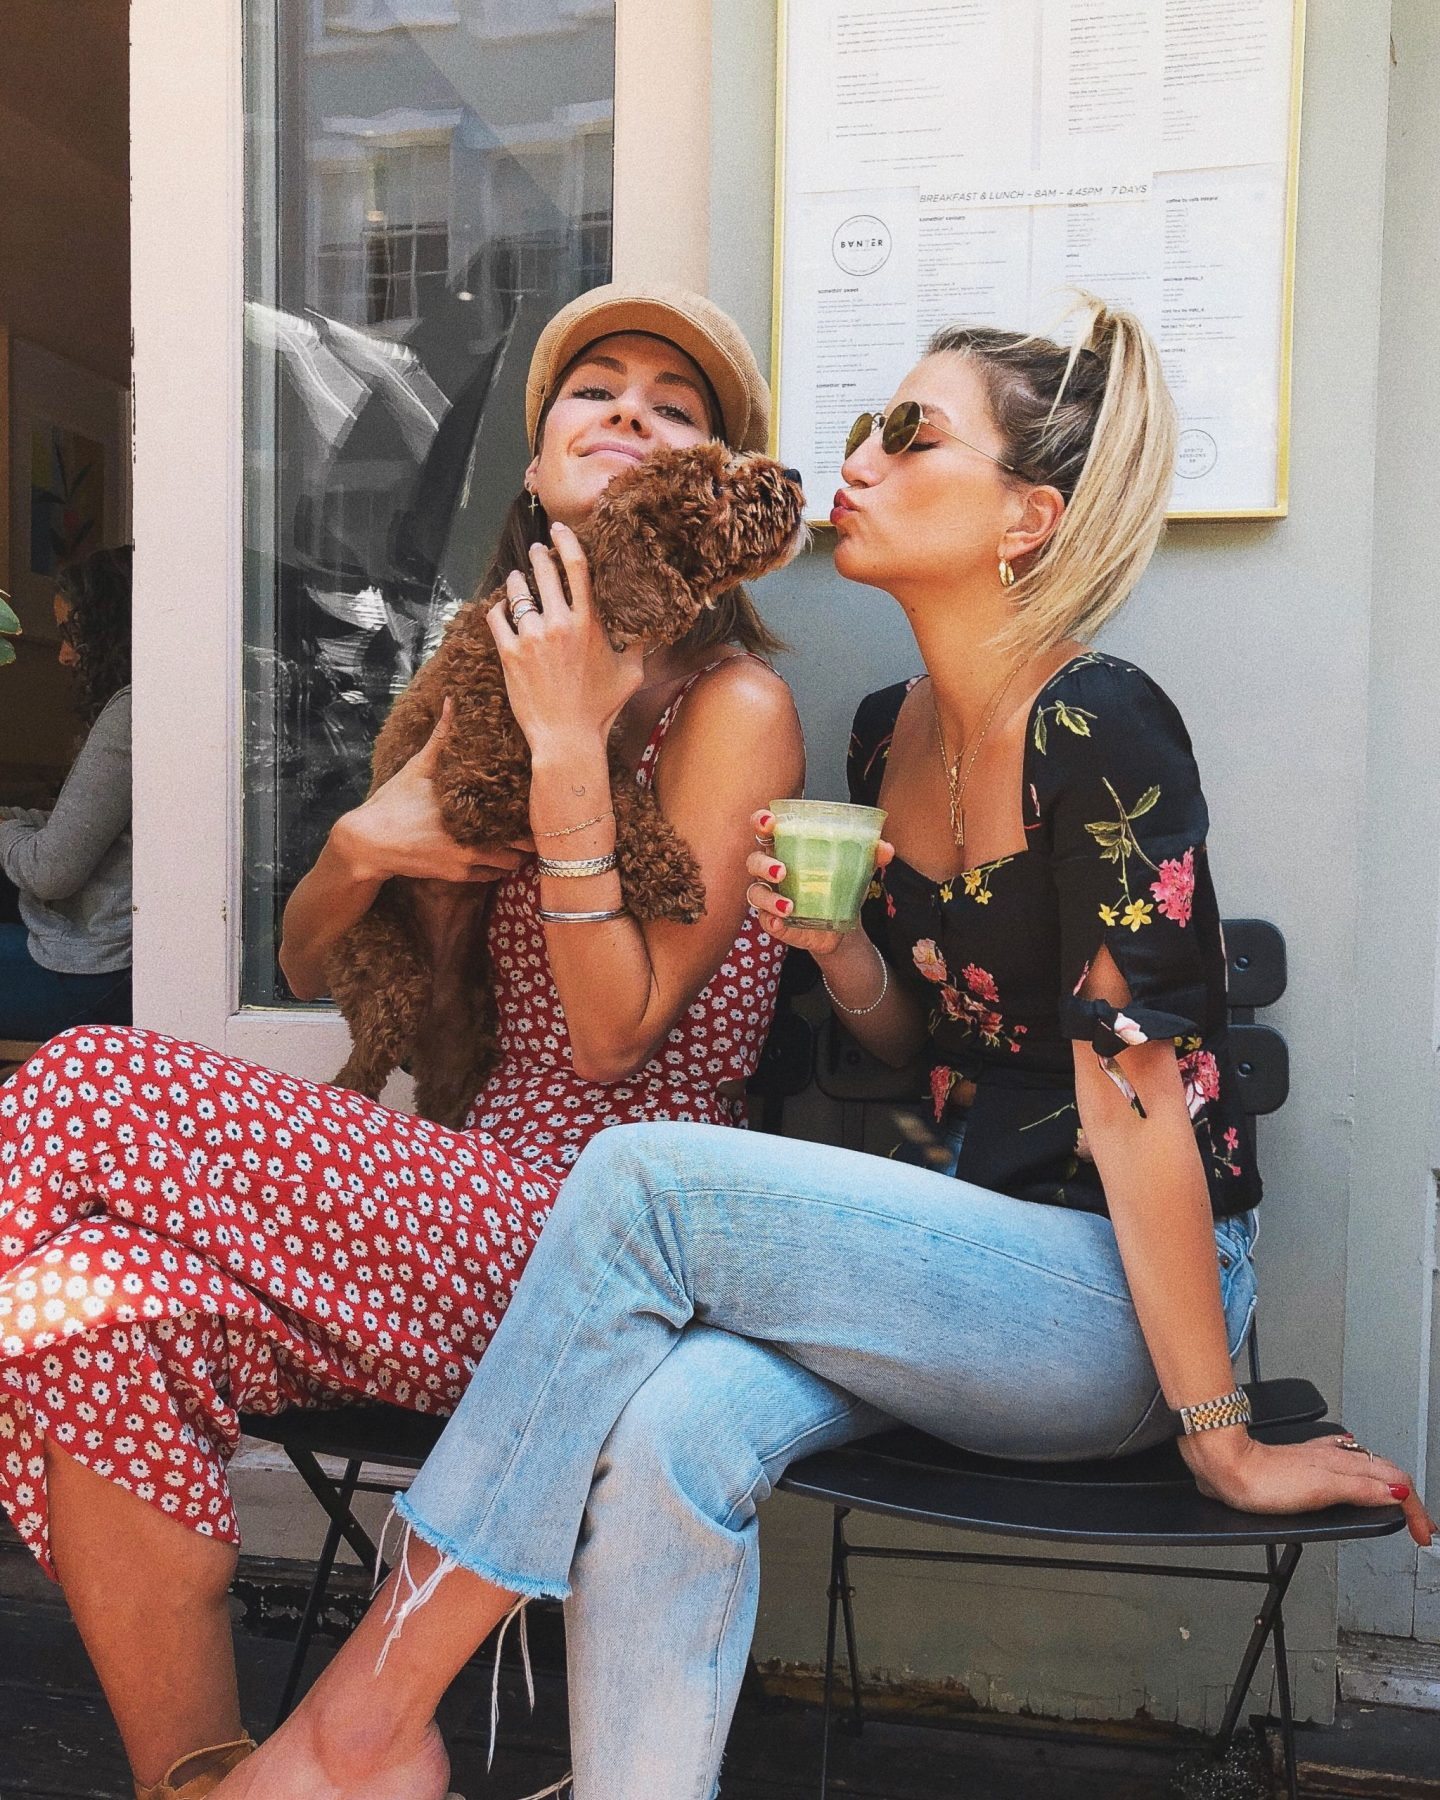 Cassandra DiMicco, Cass DiMicco, Dressed For Dreams, NYC, New York City, New York, Street Style NYC, Street Style 2018, NYC Street Style Street Style Outfits, 2018 Trends, NYC Fashion Blogger, NYC to do list, NYC to do, NYC bucket list, NYC Instagram Spots, puppy, Levis jeans, Levis high rise, Levis light wash high rise, Levis light wash, capulet, black floral crop top, capulet black crop top, capulet Lila blouse, capulet floral crop top, ray ban sunnies, ray ban round sunnies